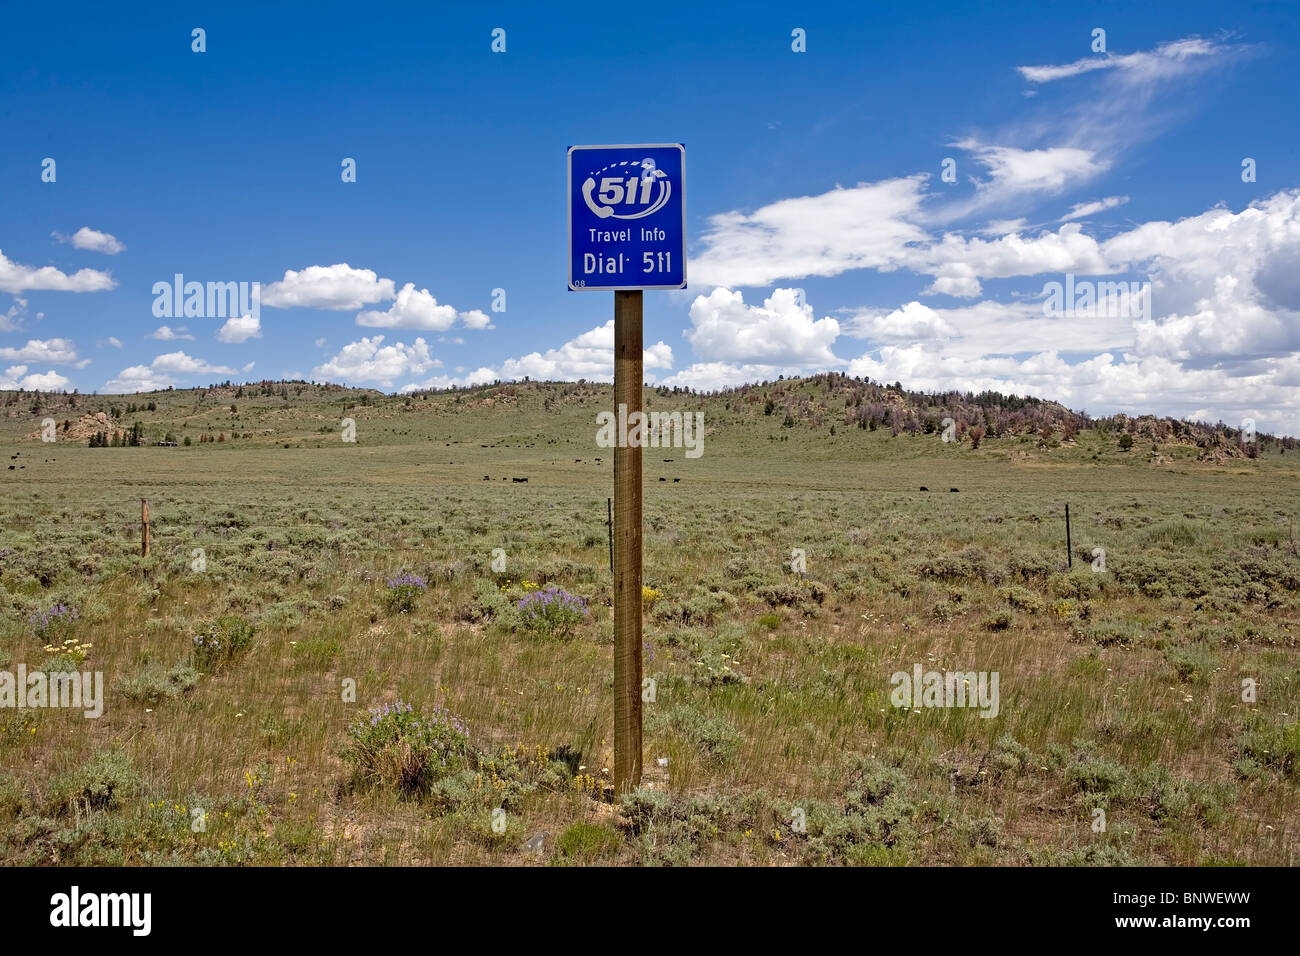 Sign posting the number to dial for travel information in Montana, at the border with Wyoming. - Stock Image